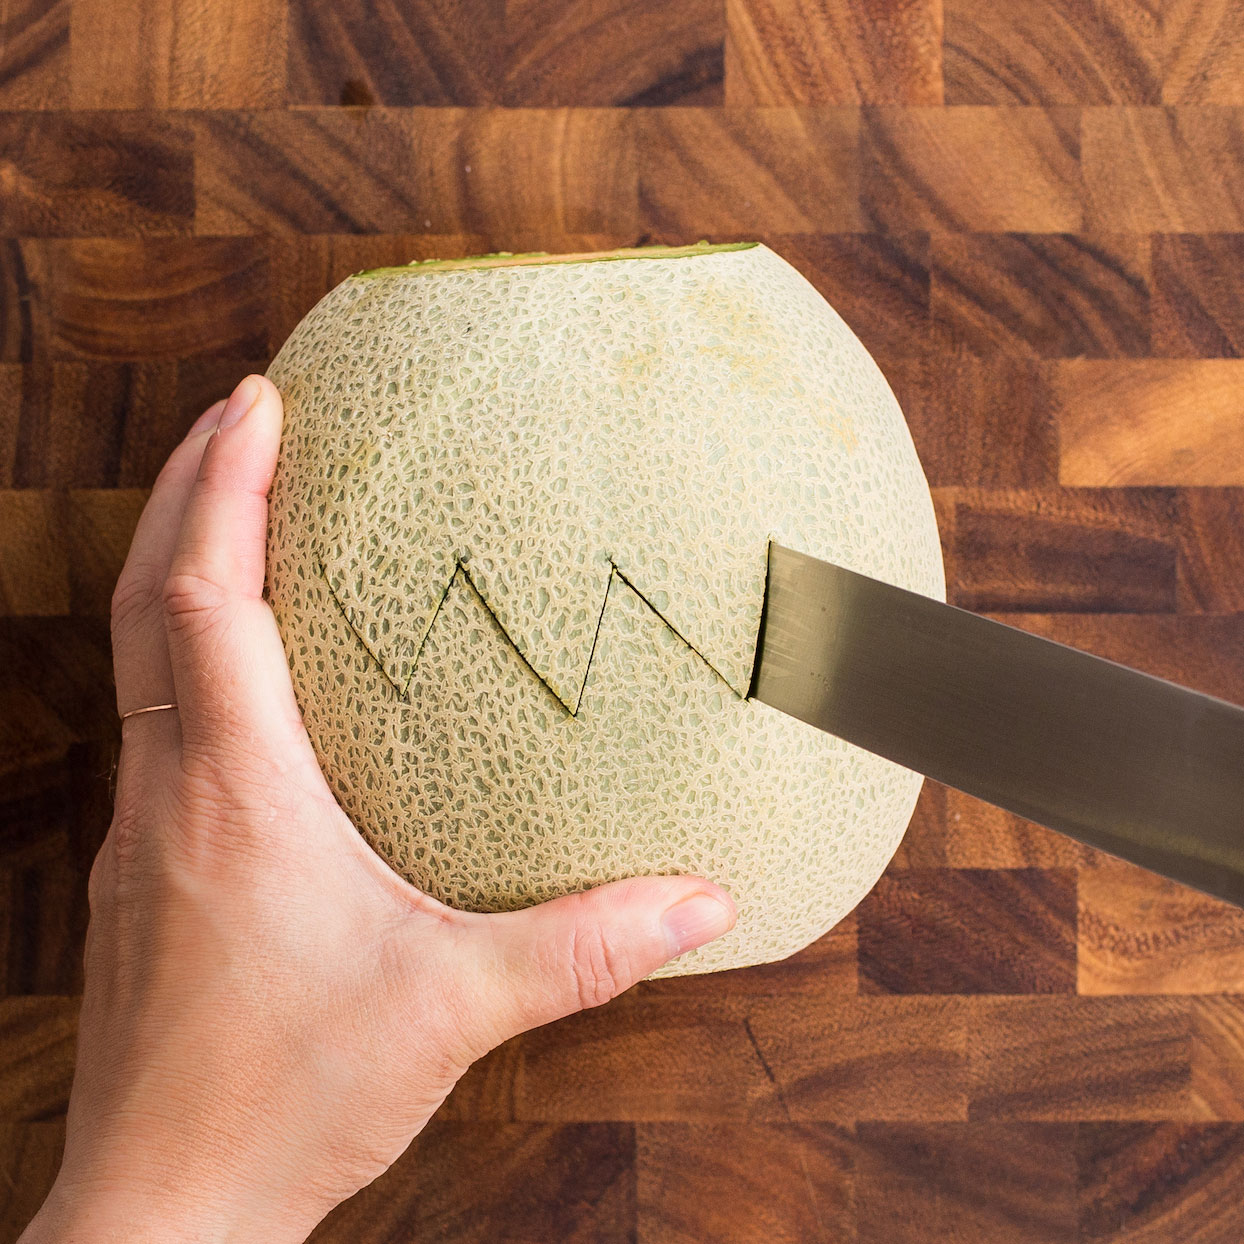 Cutting cantaloupe with a zigzag pattern on a wooden cutting board